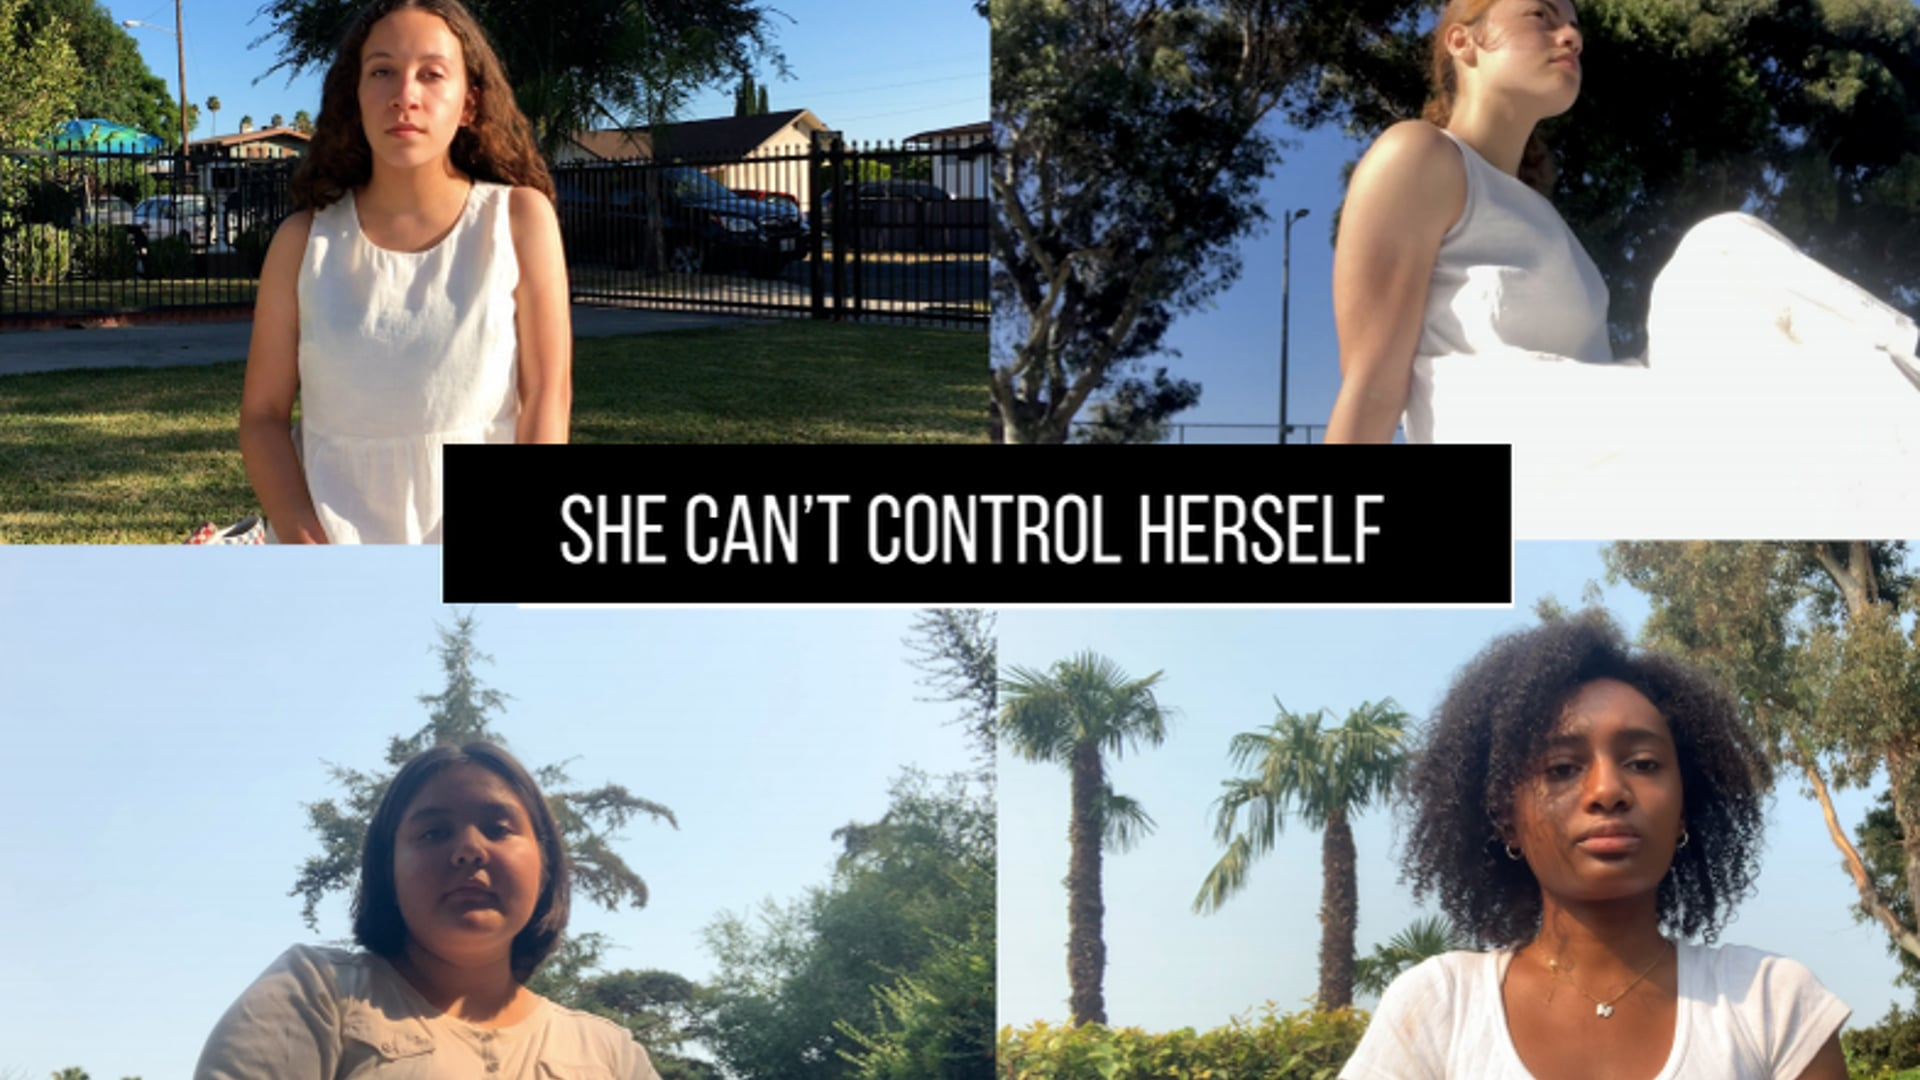 SHE CAN'T CONTROL HERSELF